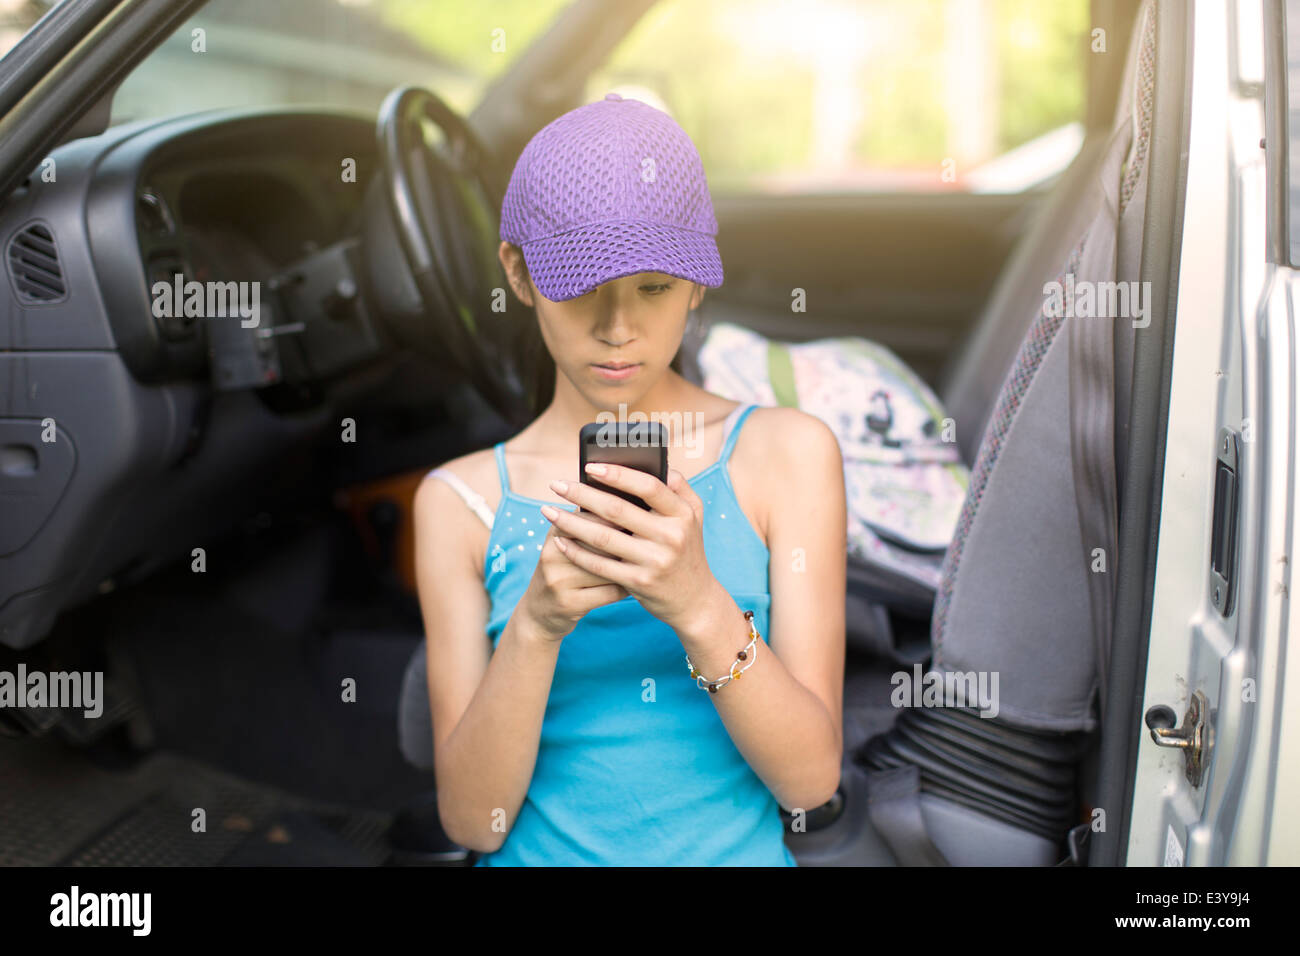 Teenage girl standing beside open car, using mobile phone - Stock Image